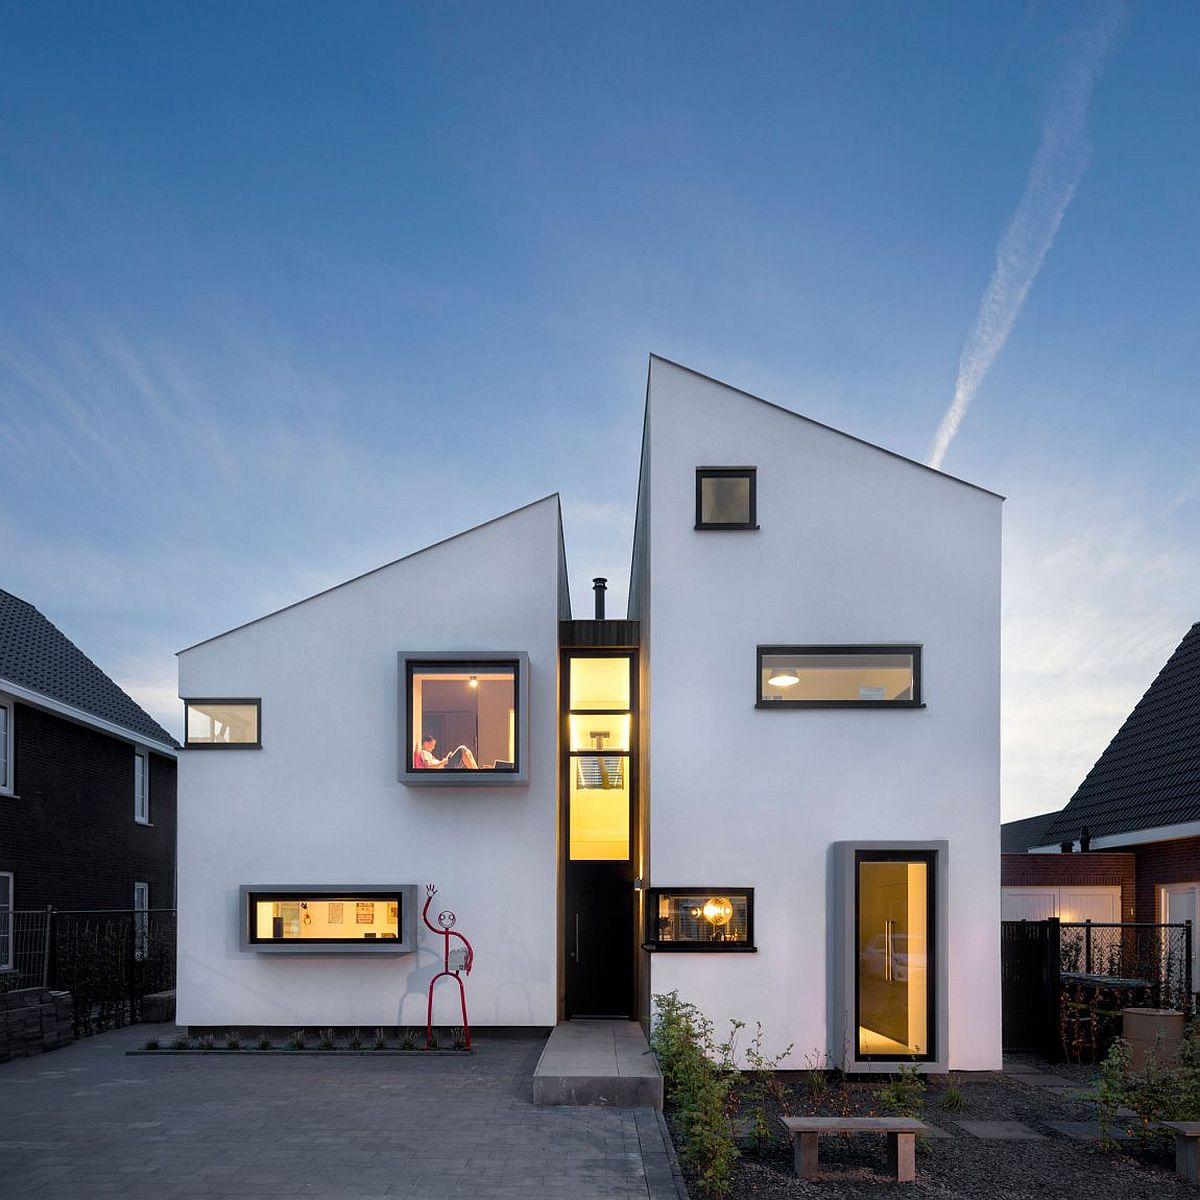 House Daasdonklaan by zone zuid architecten